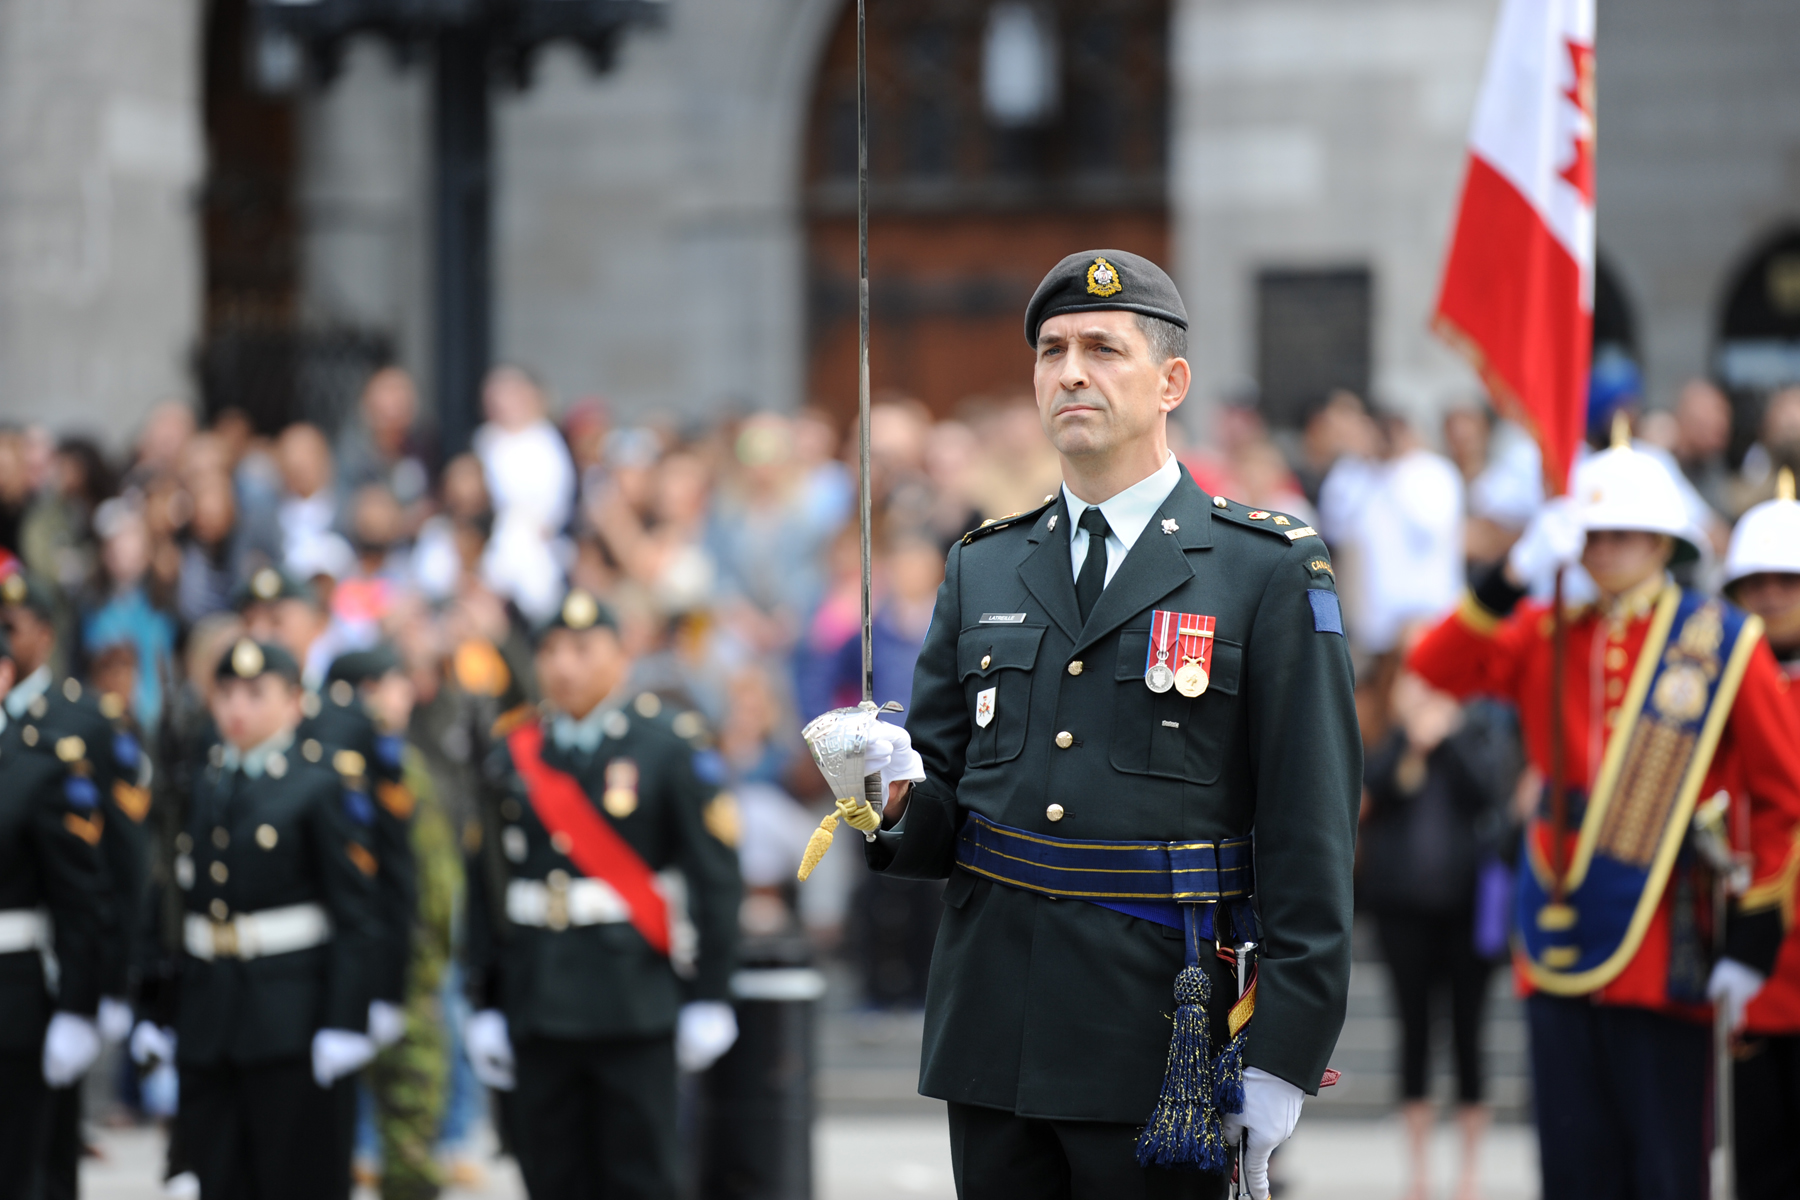 Dazzling ceremony at Montreal's Place d'armes